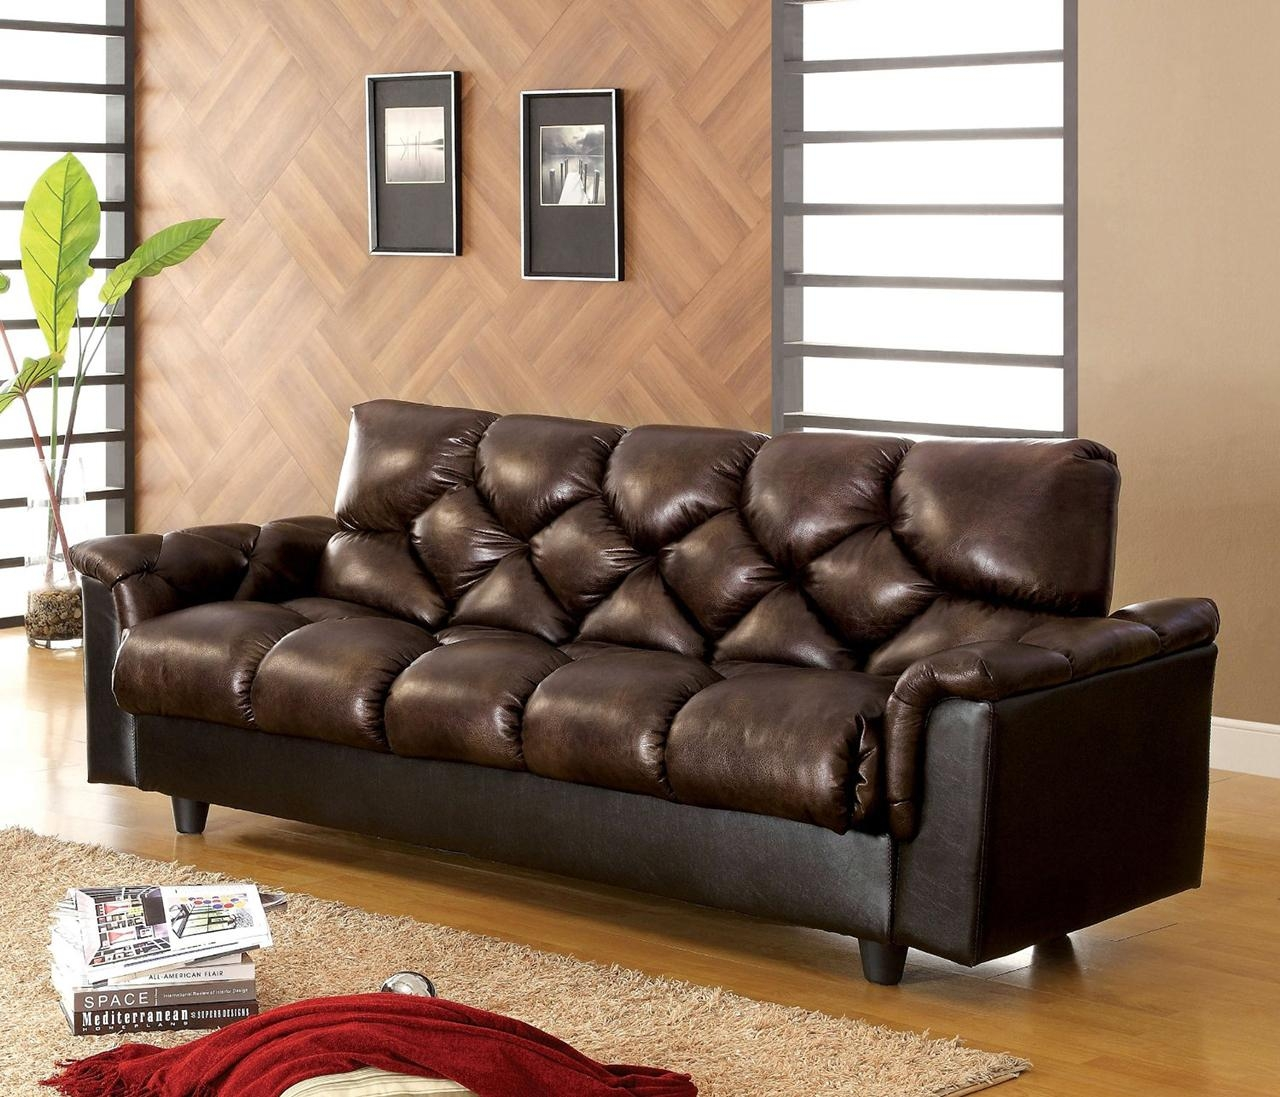 25 Best Sleeper Sofa Beds To Buy In 2017 regarding Everyday Sleeper Sofas